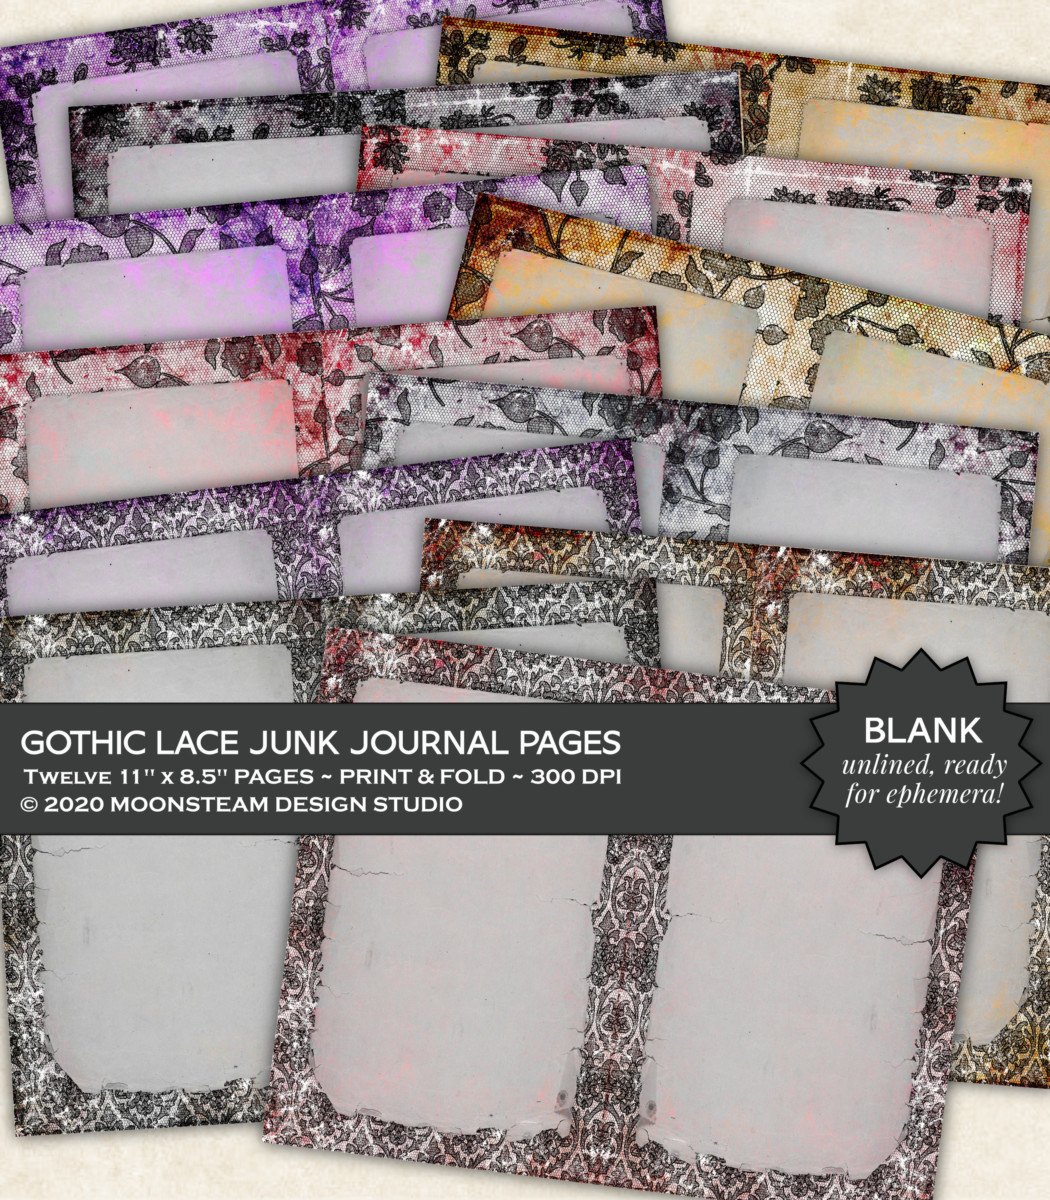 Gothic Lace Blank Journal Pages by Moonsteam Design Studio